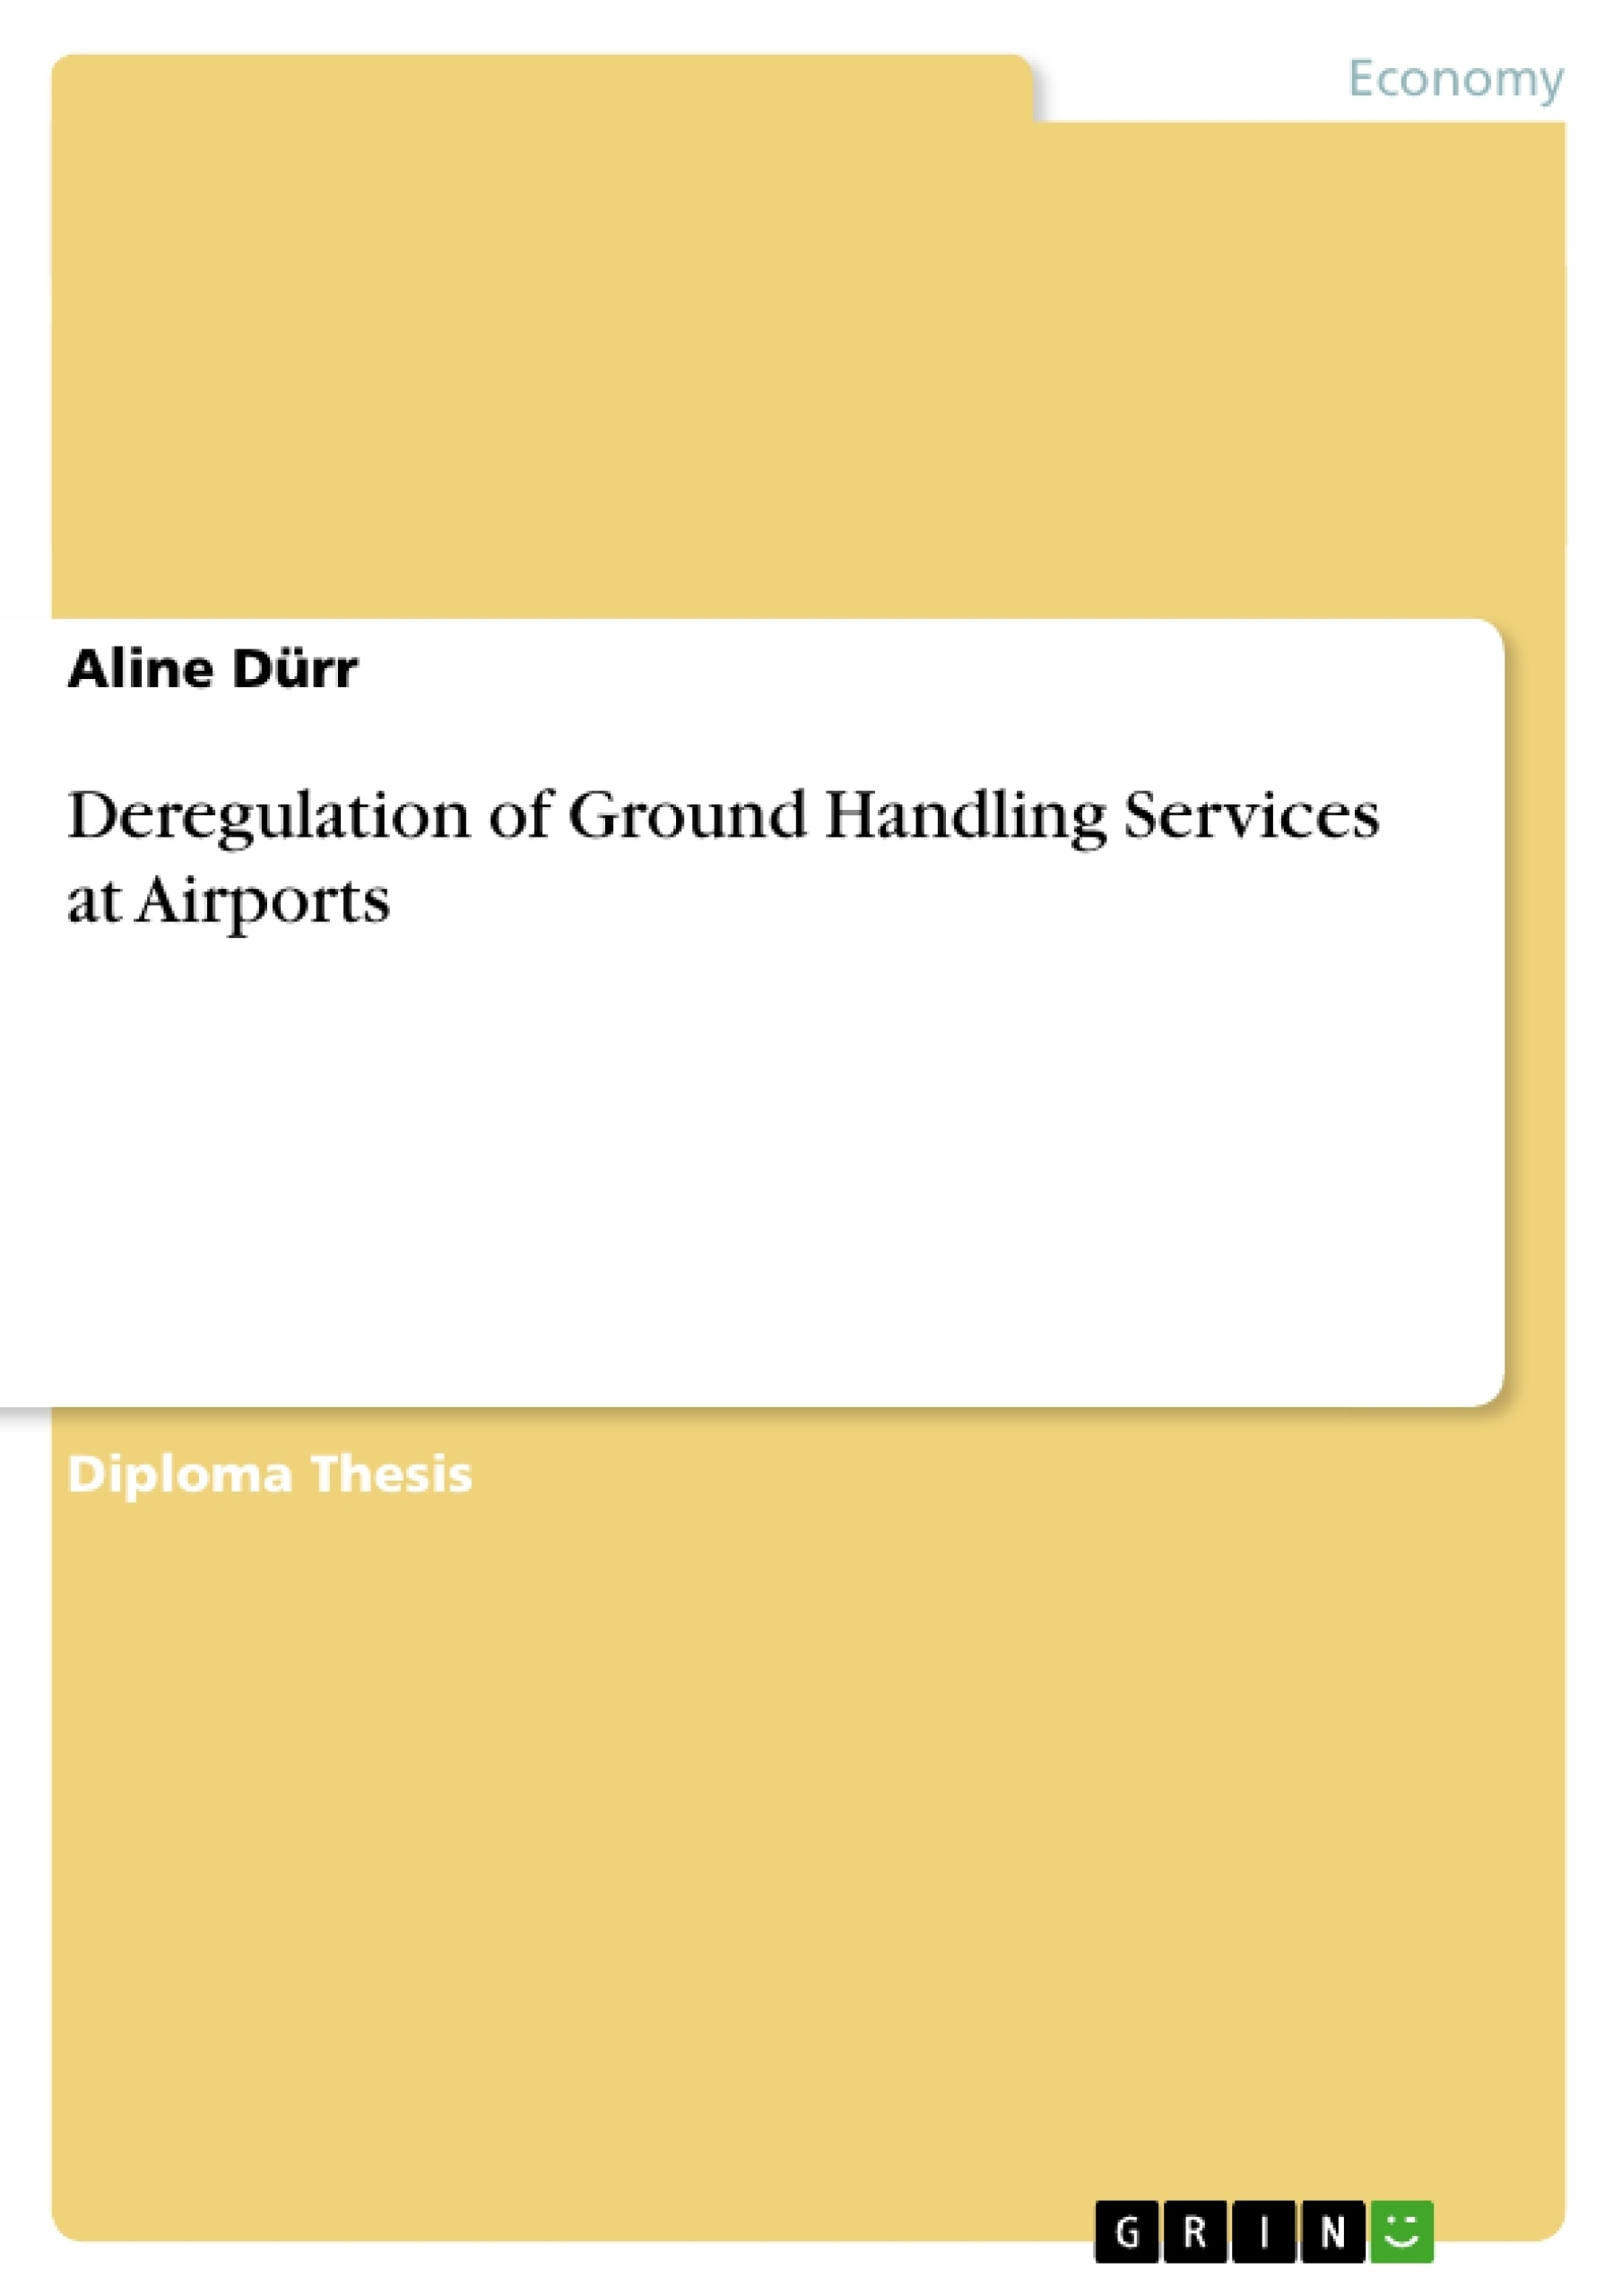 Title: Deregulation of Ground Handling Services at Airports